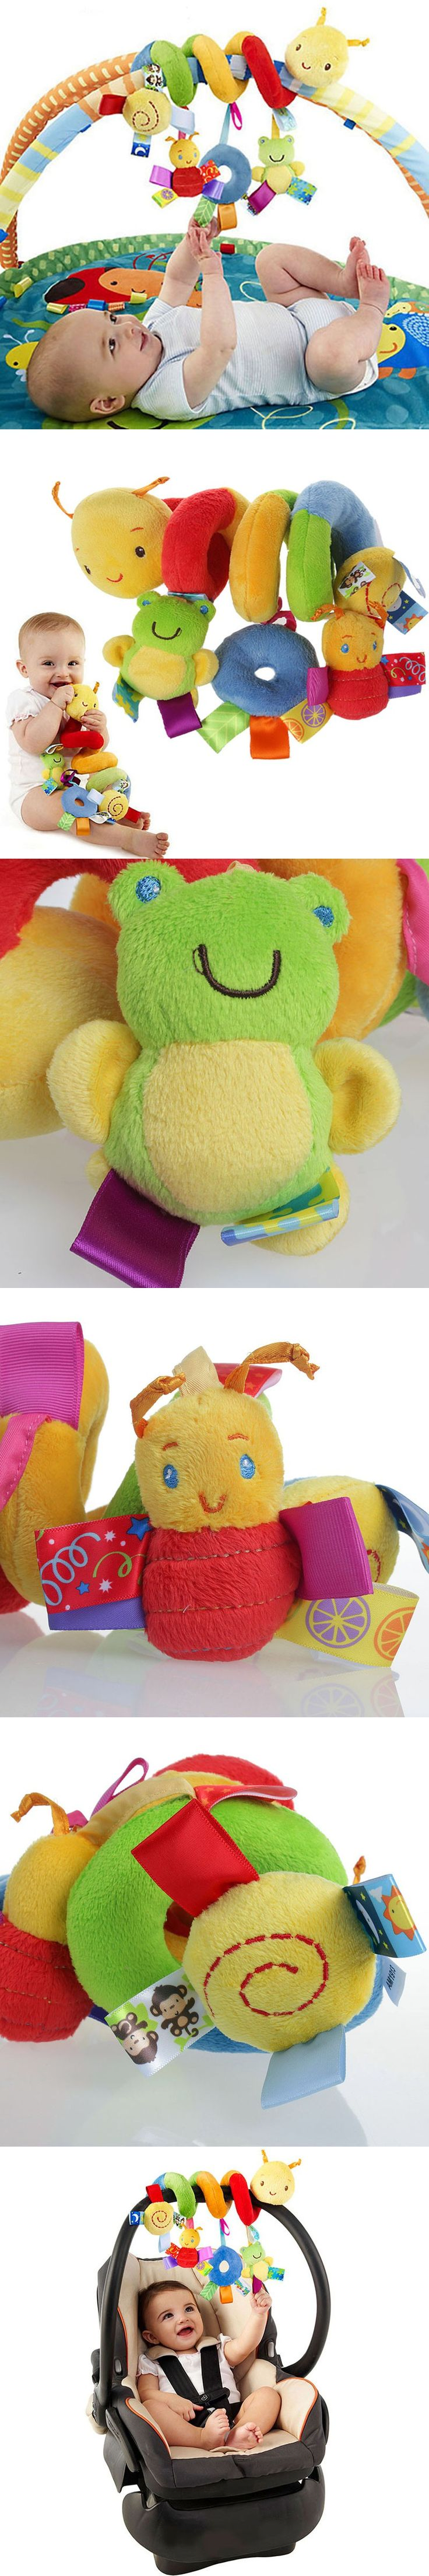 Special enclosed crib for premature babies - Lovely Cartoon Animals Baby Toys Newborn Plush Colorful Educational Rattle Mobiles Toys Infant Bed Sheep Hanging